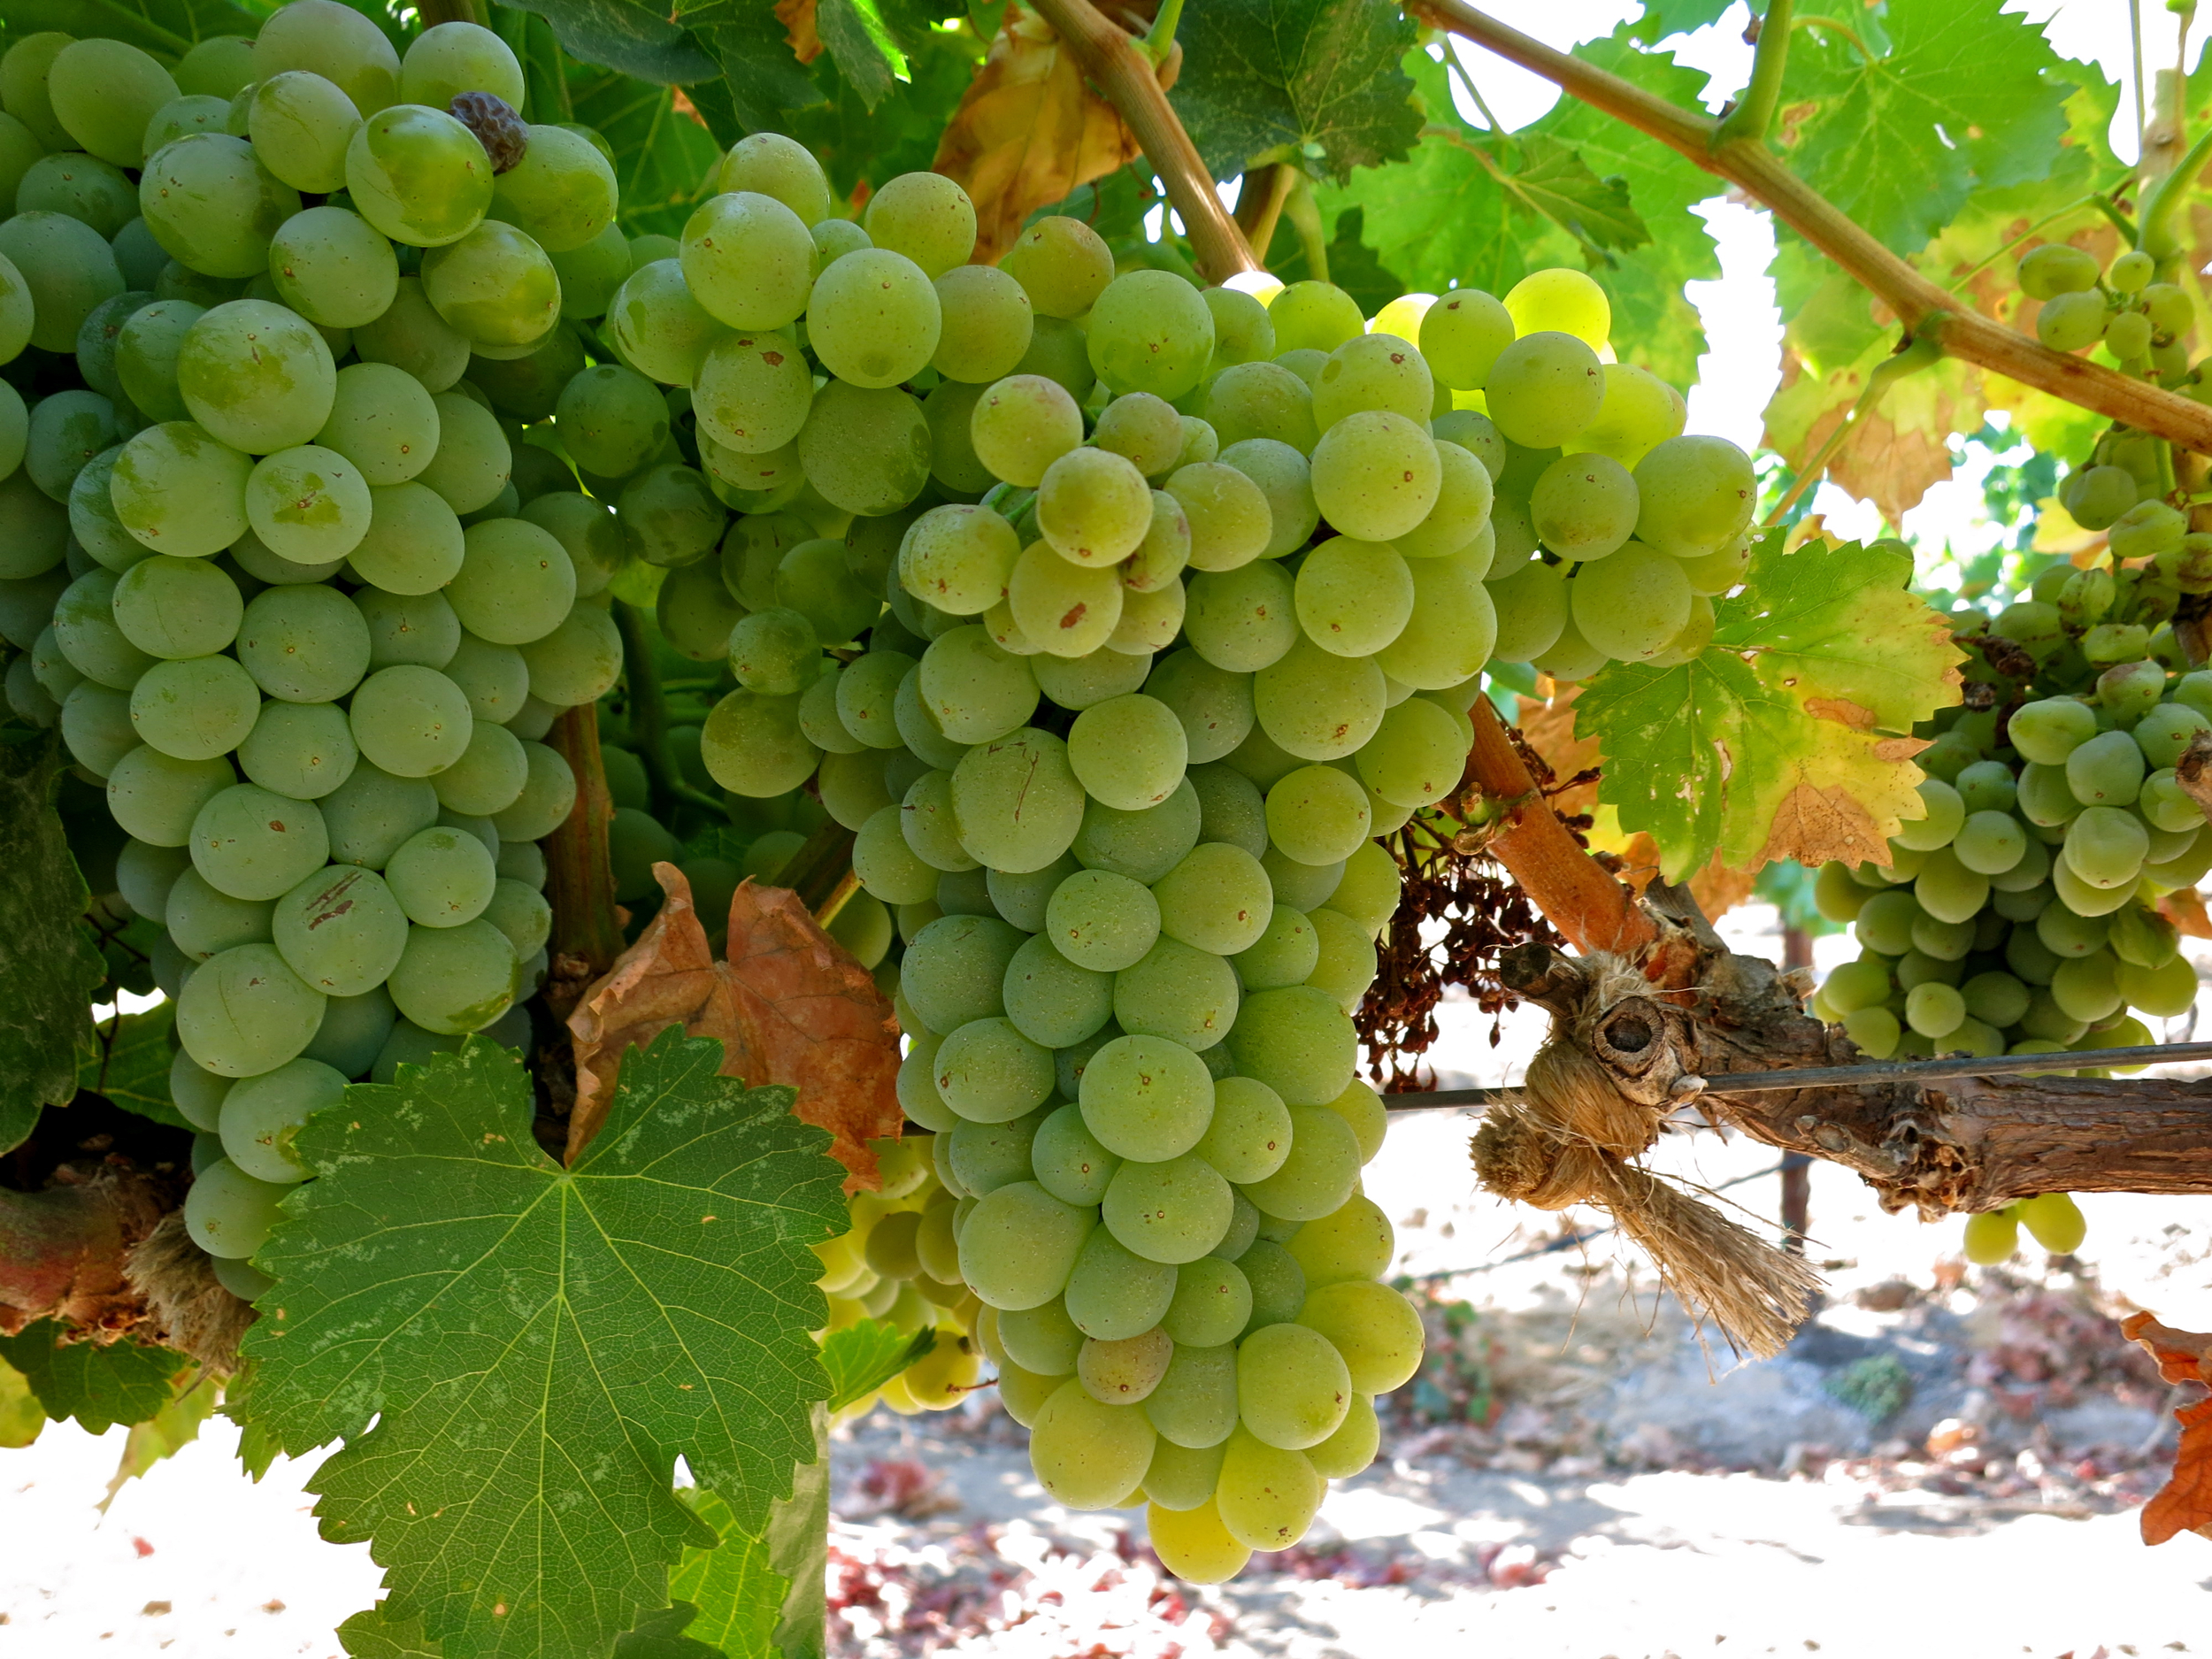 Acquiesce Grown Grenache Blanc Variant Of Noir Becoming Por Among Wiwers And Consumers